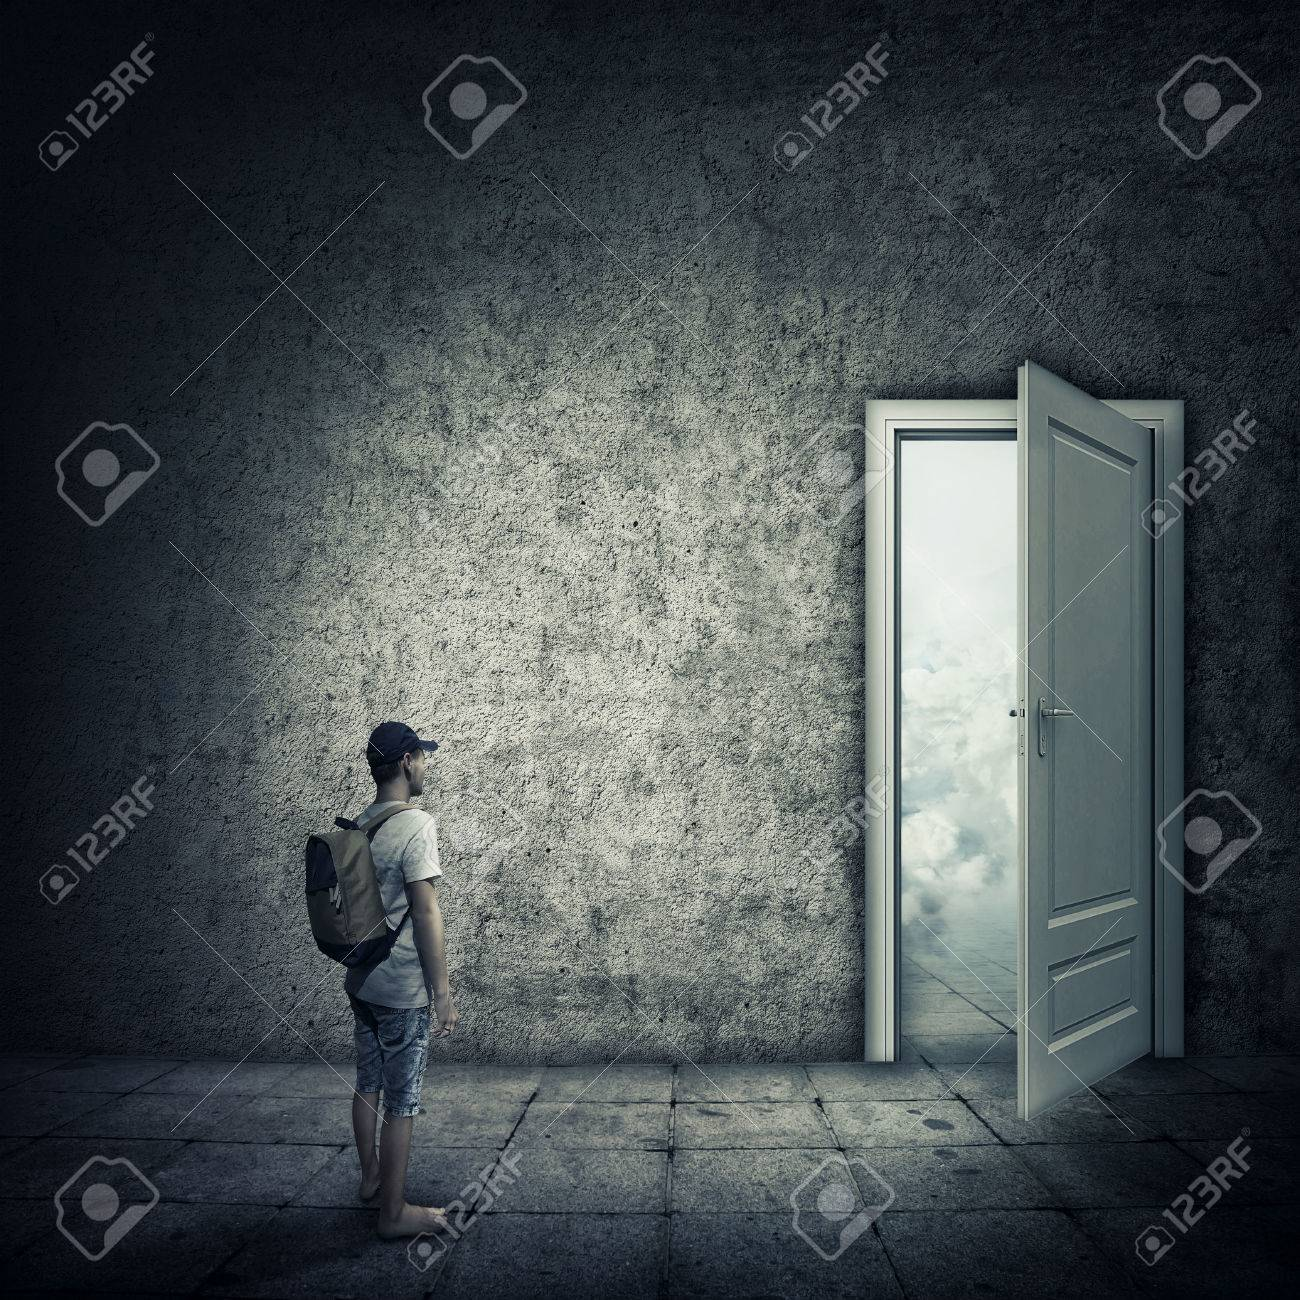 Abstract idea with a person standing in a dark room in front of a opened : door escape - pezcame.com